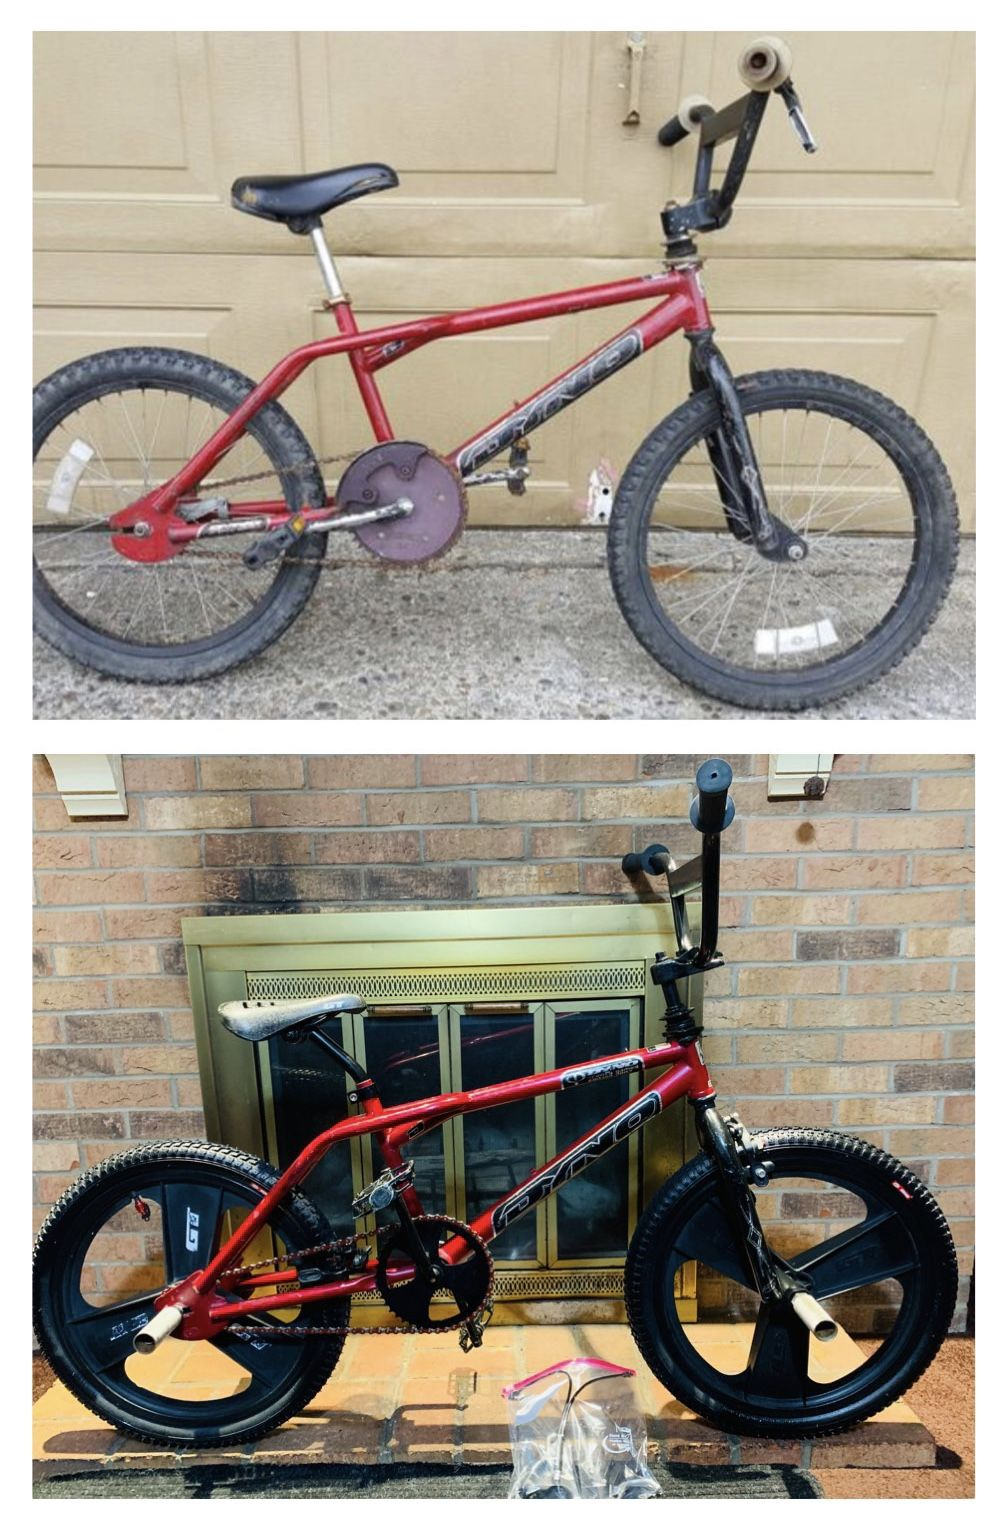 2002 Gt Dyno Zone Gravity Games Edition 20 Freestyle Bmx Bought